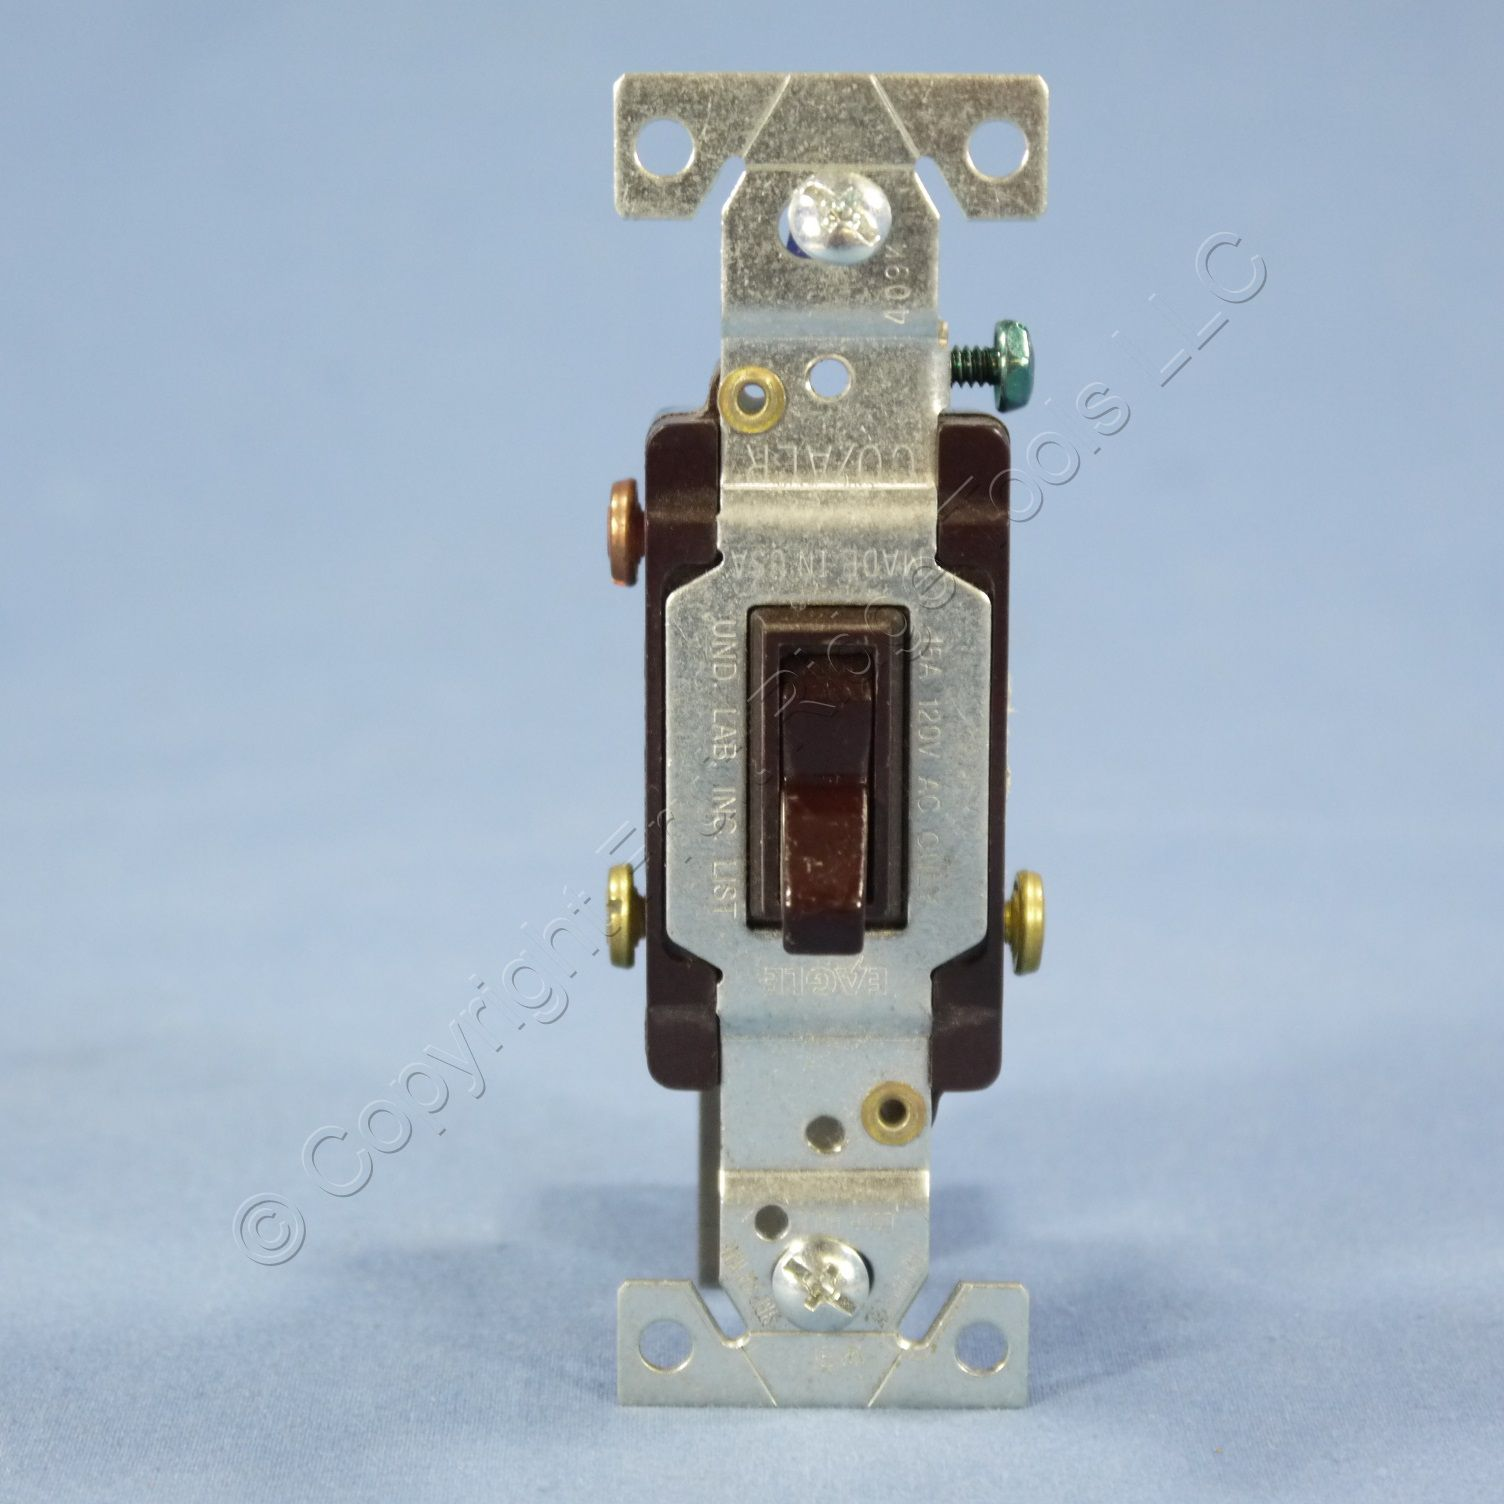 hight resolution of eagle brown 3 way toggle wall light switch co alr aluminum wiring 15a 5223 7b